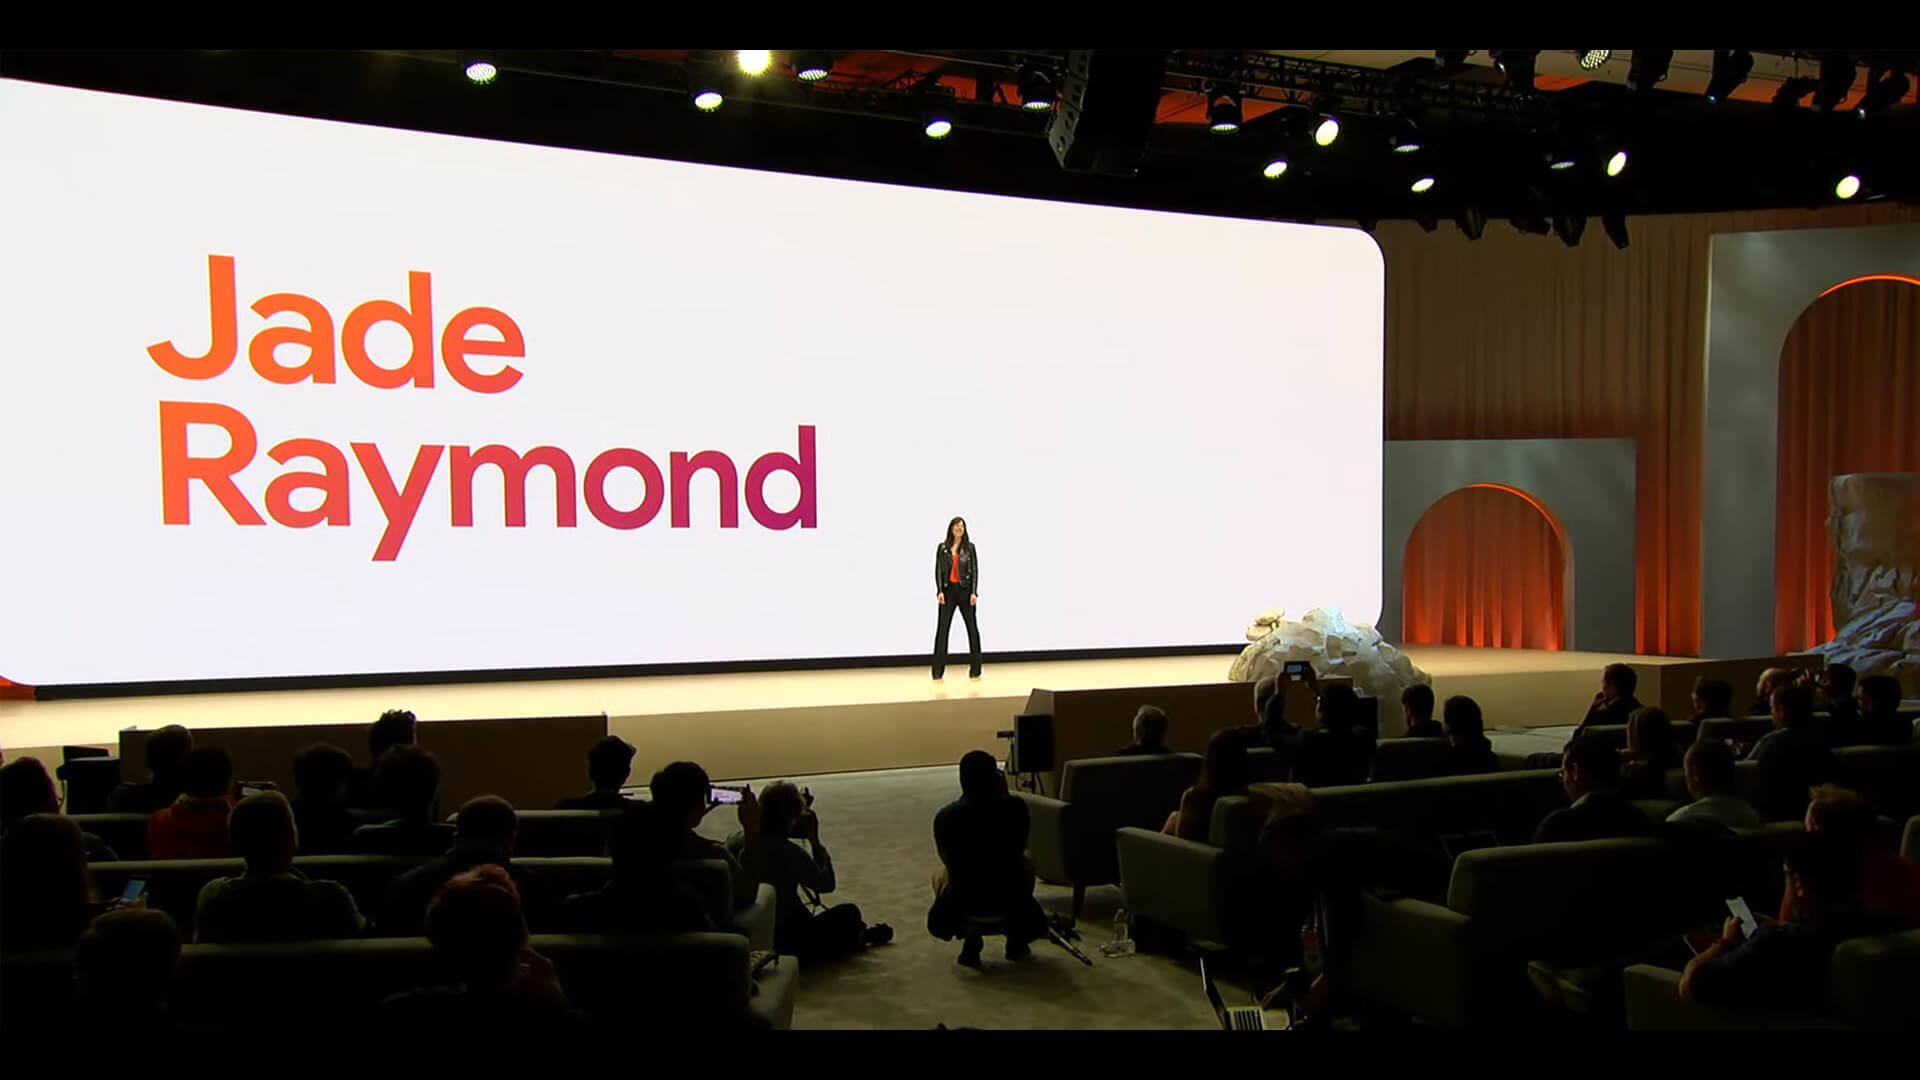 Jade Raymond Forms New Studio, is Working On New PlayStation IP